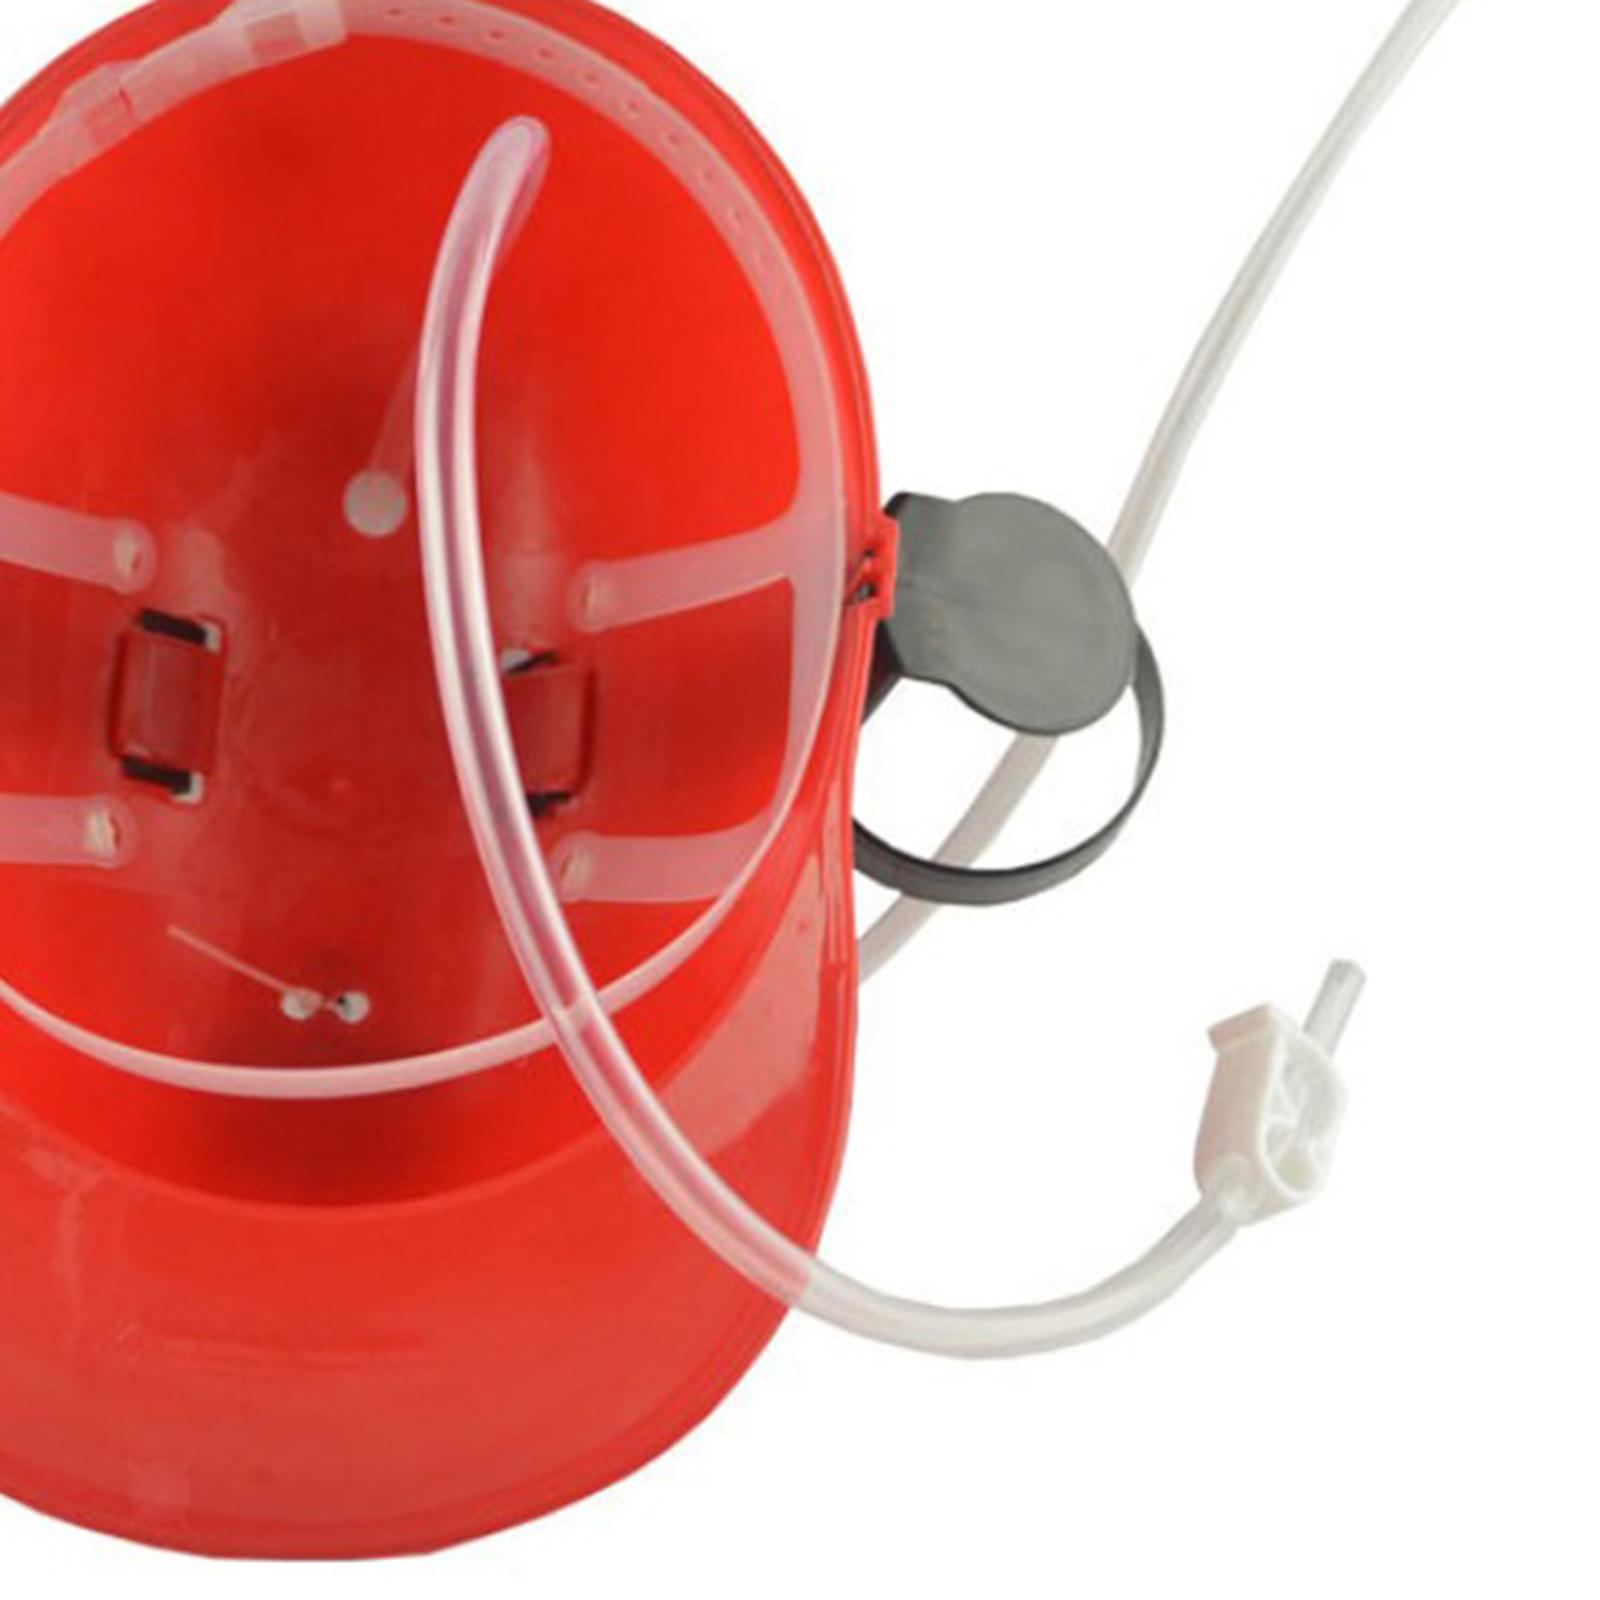 Novelty-Drinking-Helmet-Beer-Hat-Drink-Holder-Cola-Soda-Party-Stag-Do-Game miniature 4